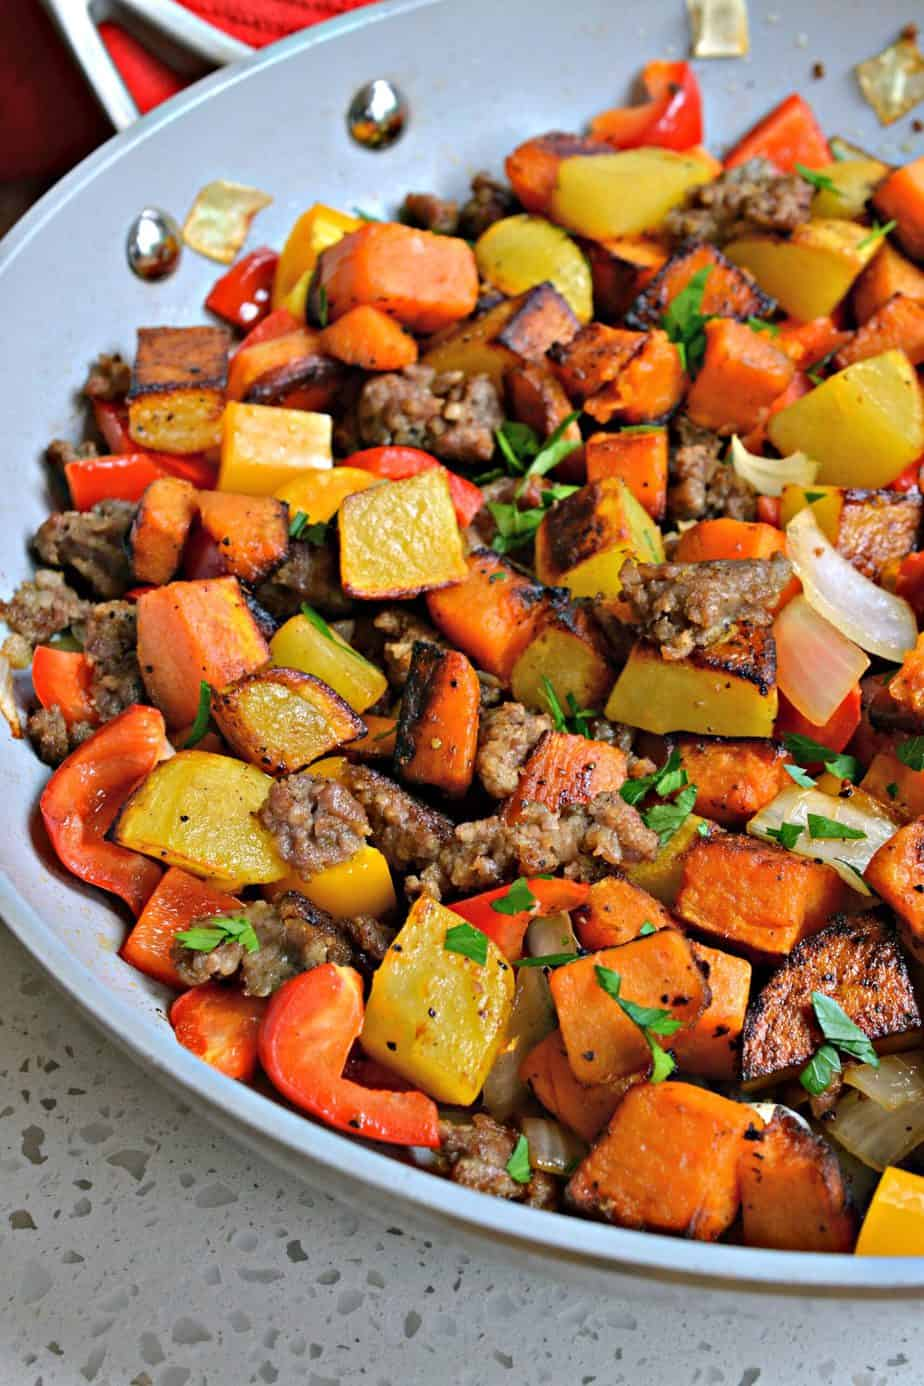 This hearty Sweet Potato hash has both sweet potatoes and gold potatoes, along with onions, bell peppers, and pork sausage.